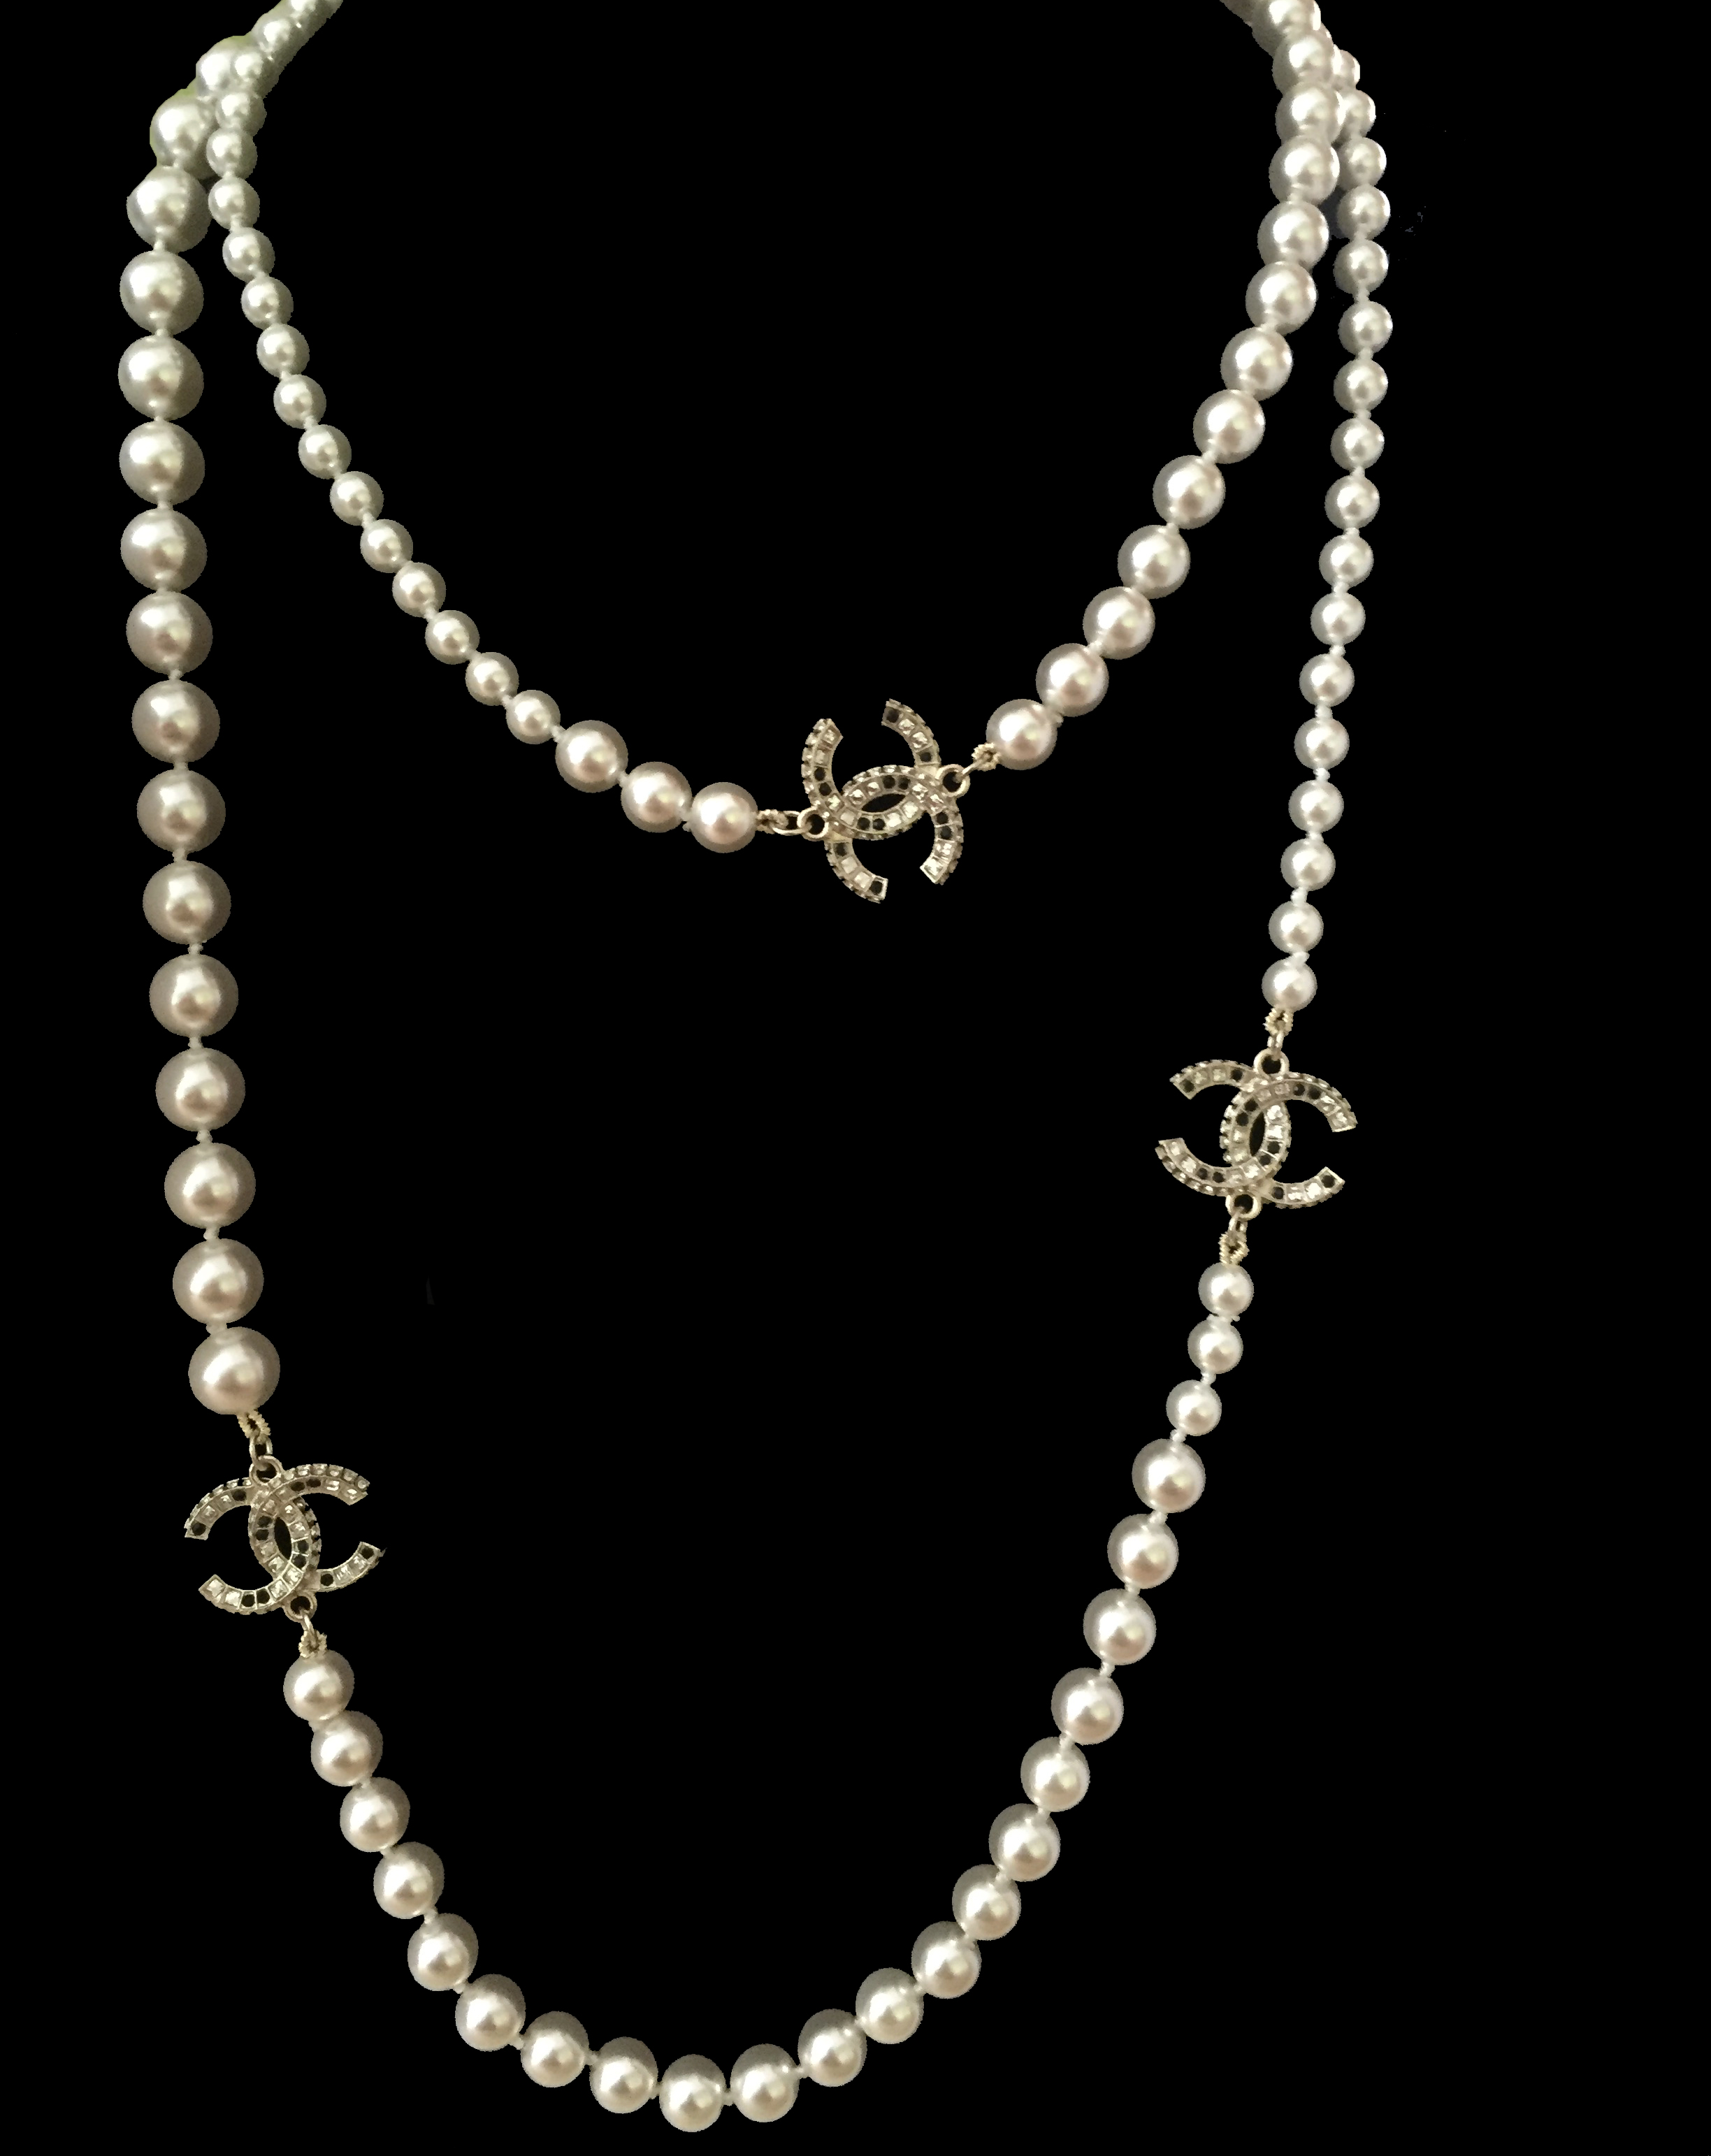 long pearl necklace 3 charms inspired chanel sofi. Black Bedroom Furniture Sets. Home Design Ideas